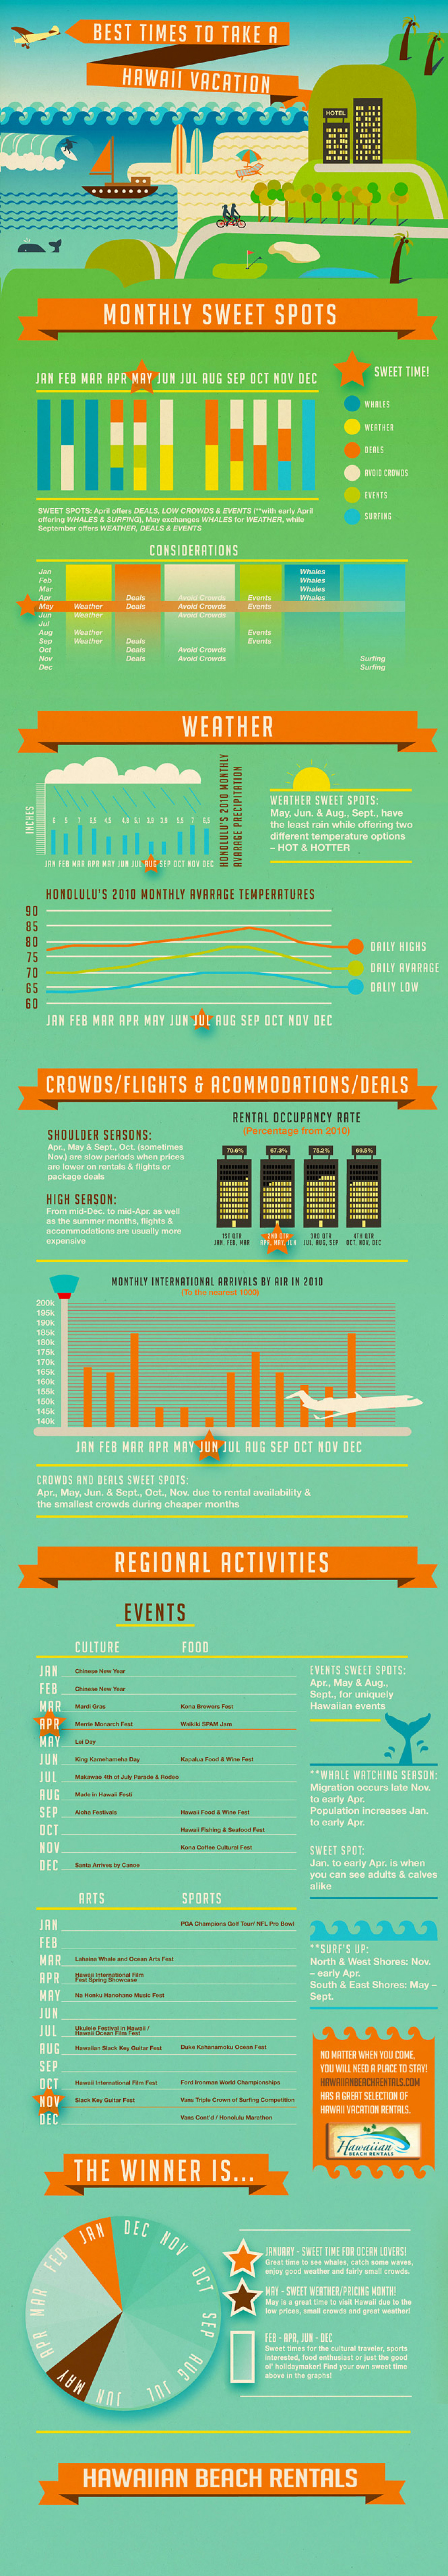 Best Time to Take a Hawaii Vacation Infographic